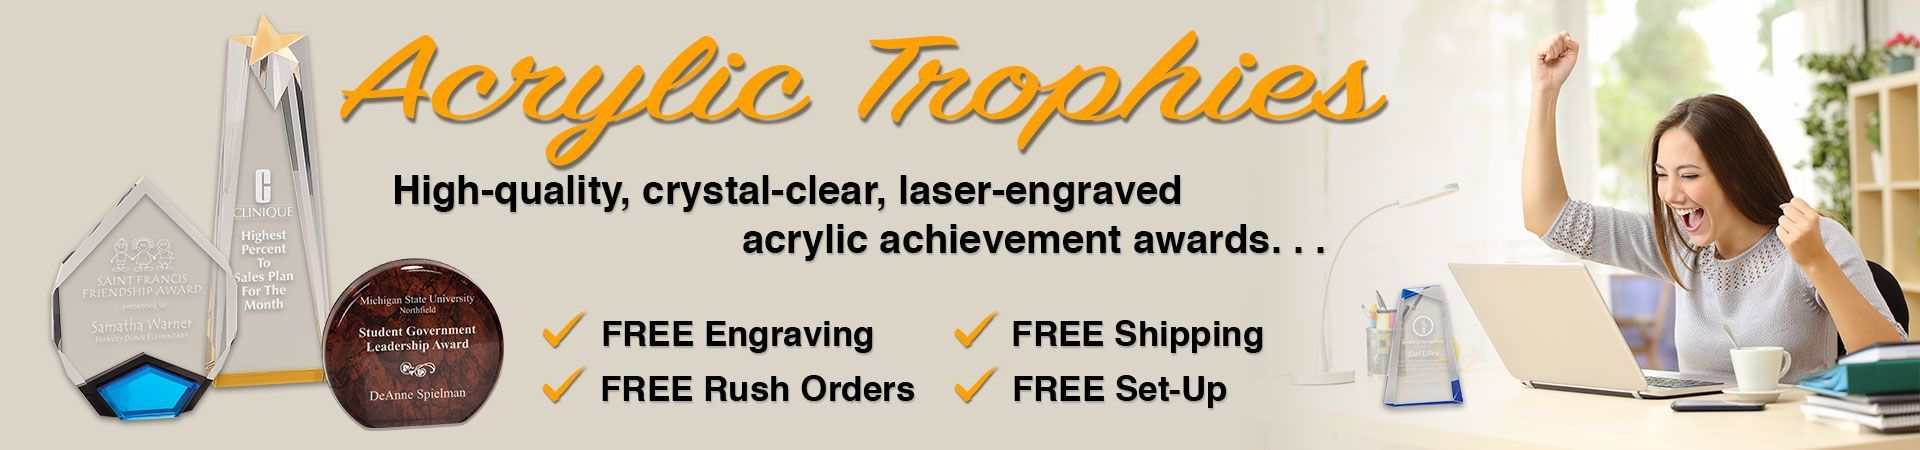 Acrylic Trophies with text the high-quality, crystal-clear, laser-engraved acrylic achievement awards. . .